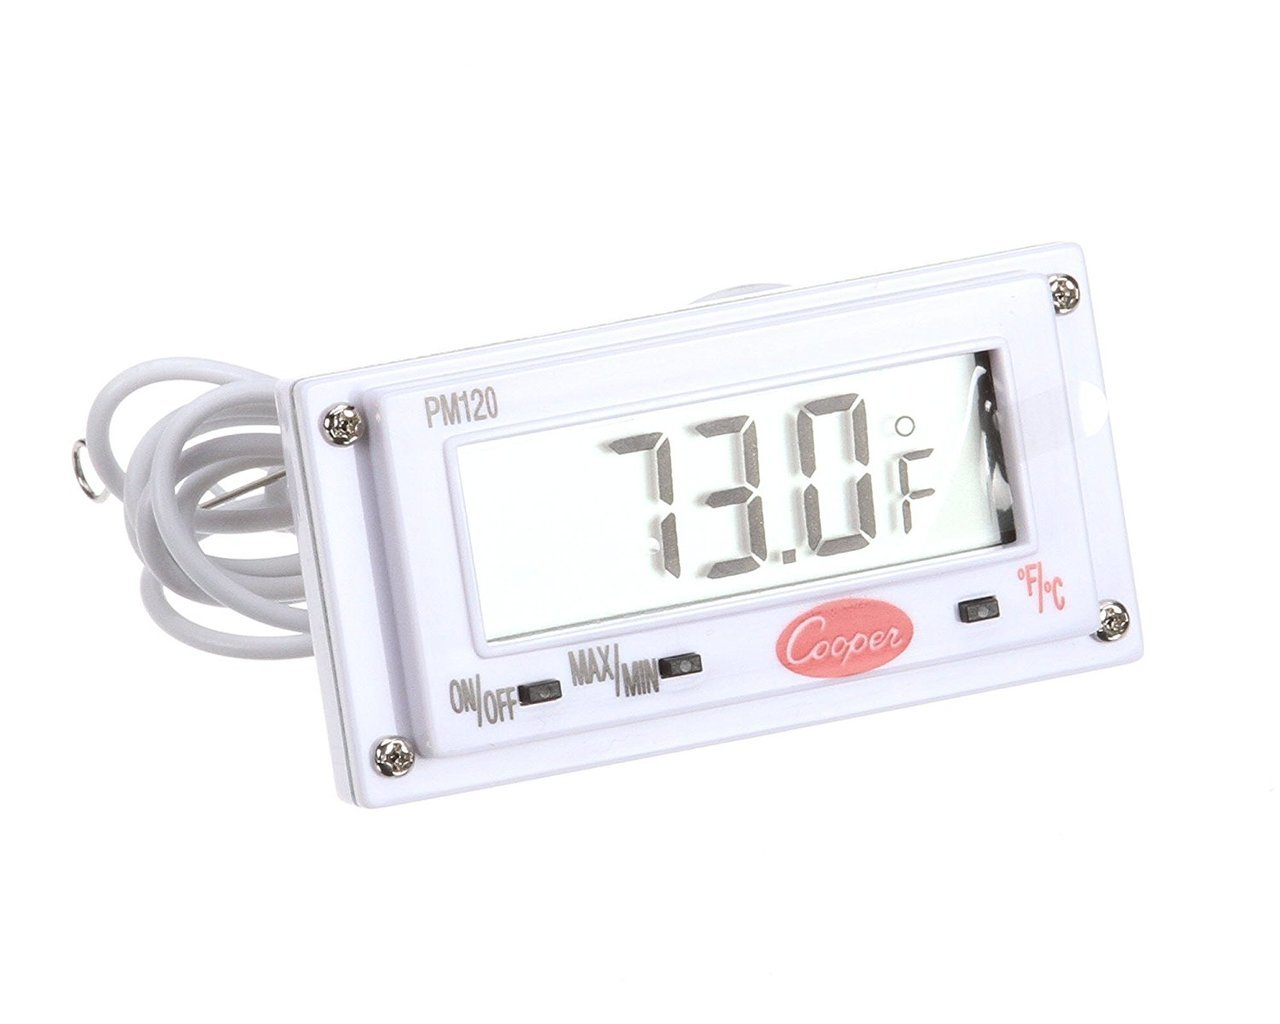 Bulk Digital Panel Thermometer 2.6x1.4-40/120°F/°C: Cooper Atkins PM120-0-8 (58 Panel Thermometers)